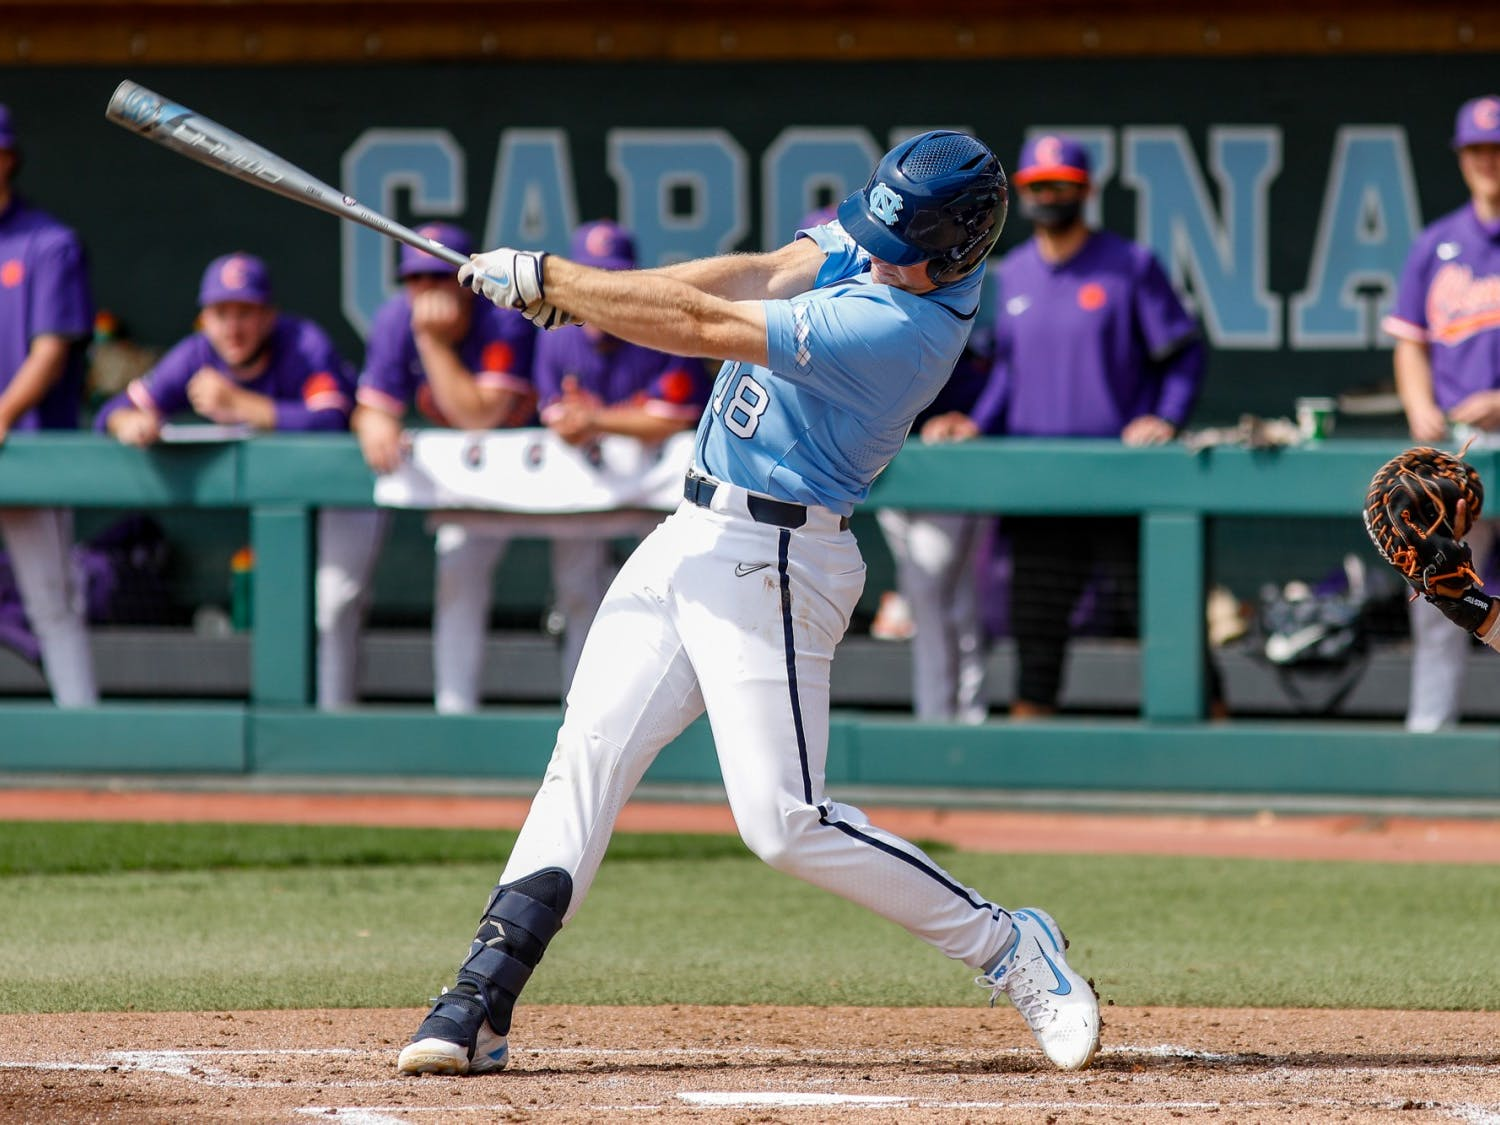 UNC junior Clemente Inclan (18) swings the bat in a game against Clemson University at Boshamer Stadium on Sunday, March 14, 2021. The Tar Heels beat the Tigers 5-3. Photo courtesy of Abe Loven.